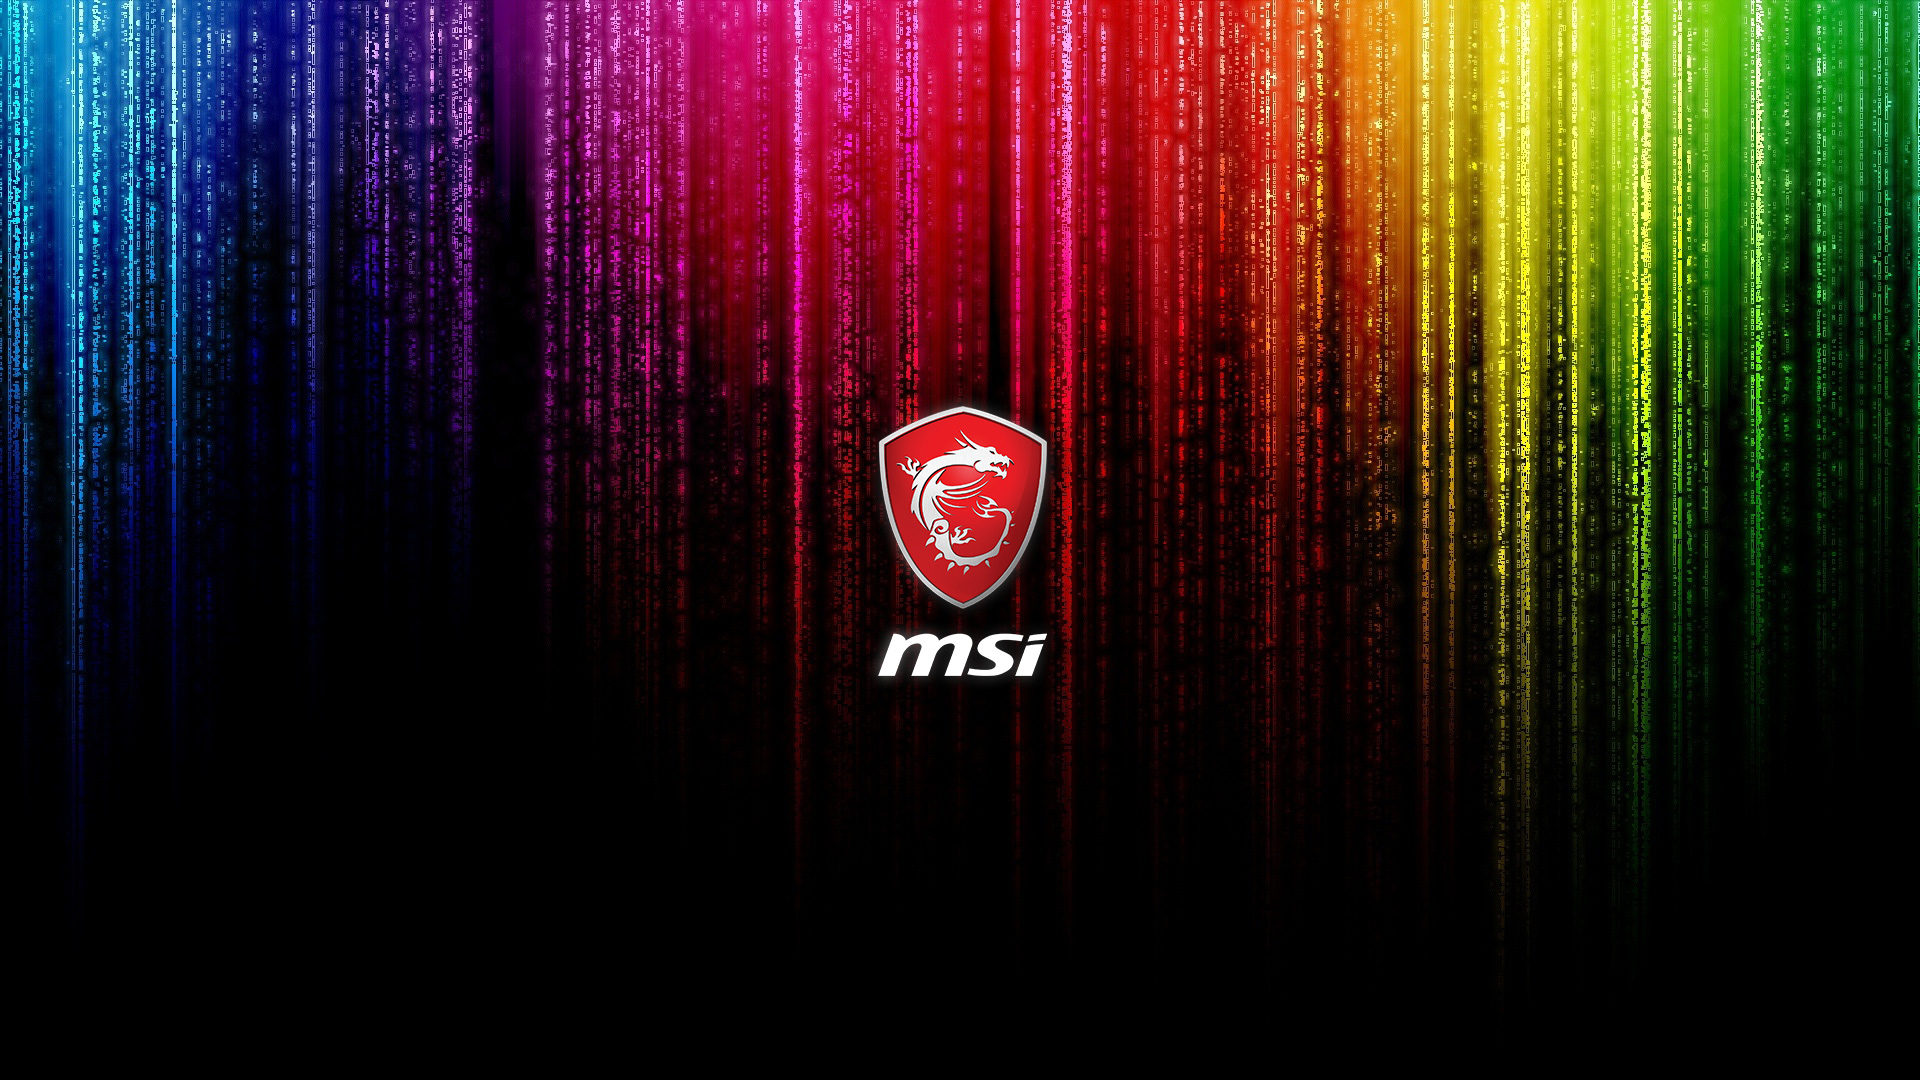 10 New Msi Gaming Series Wallpaper Full Hd 1920 1080 For: MSI Wallpapers HD